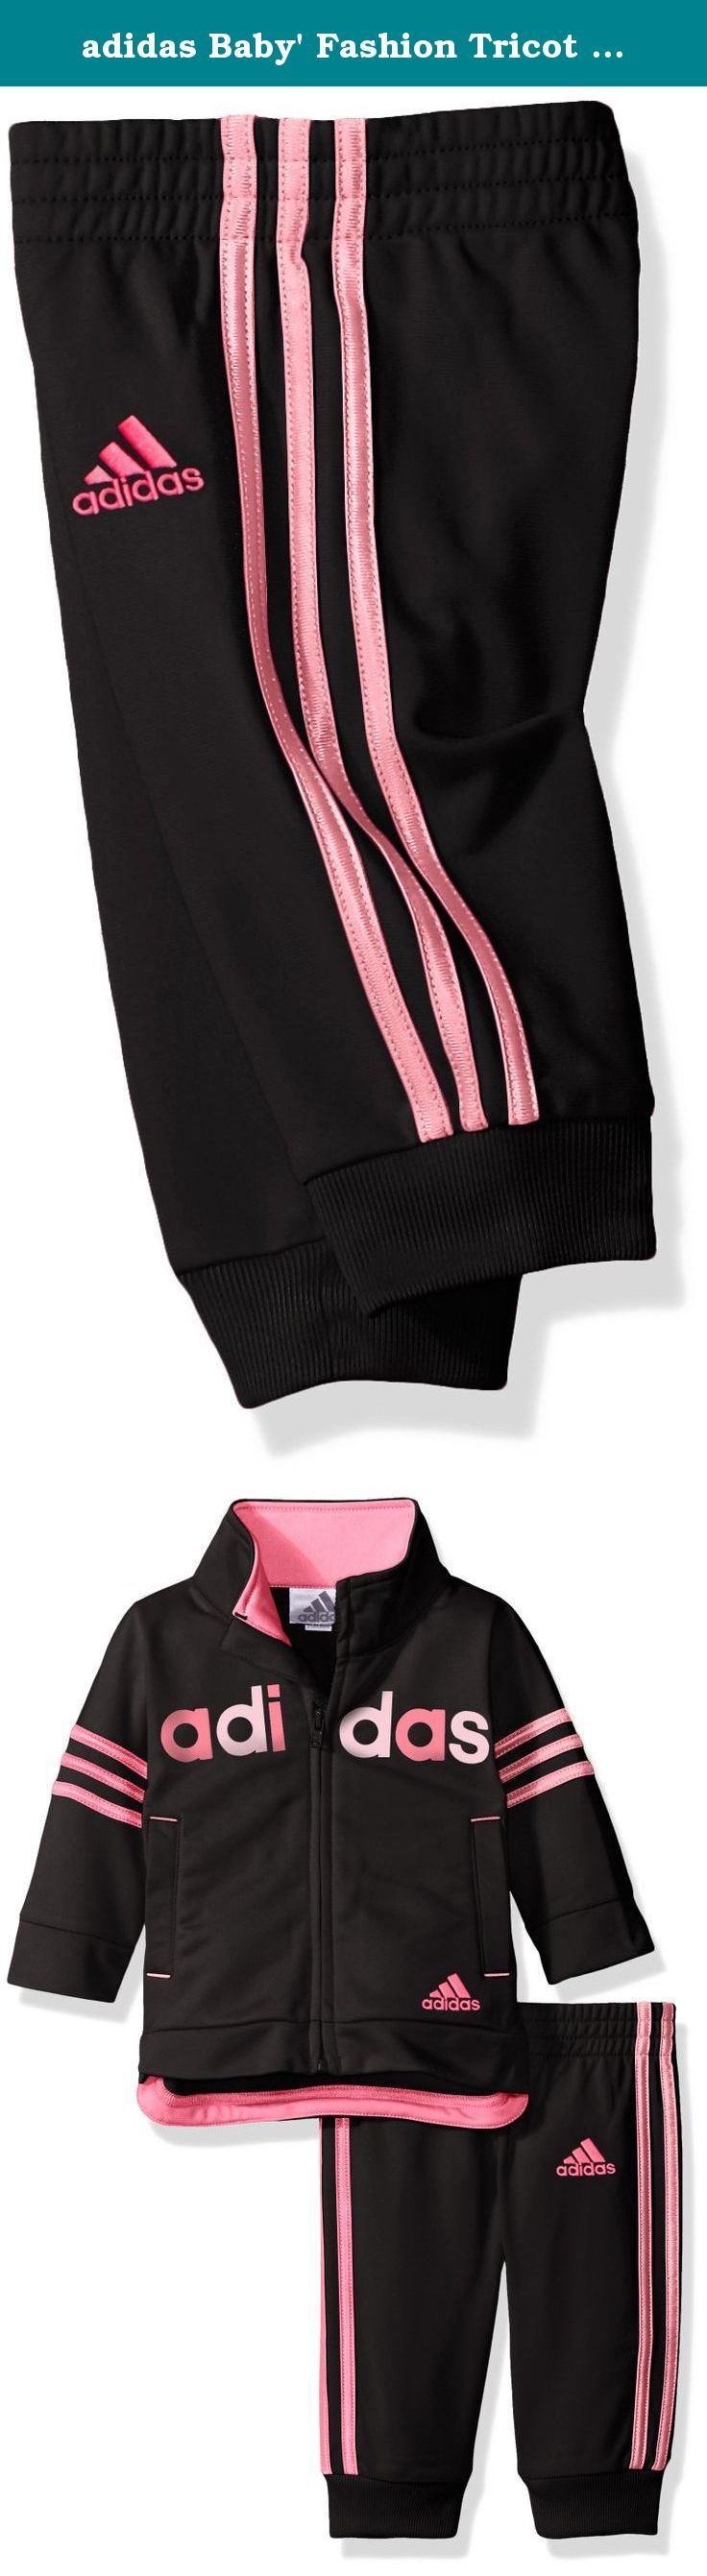 adidas Baby' Fashion Tricot Jacket and Pant Set, Caviar Black, 18 Months. The jogger tricot jacket set features drop shoulder sleeves with dazzle applied stripes on sleeves and welt pockets. Mock neck and drop-tail hem are lined with contrast facing. Adidas linear read screen printed across chest and embroidered Adidas brand mark below left front pocket. Jogger style pant features elastic waistband, bottom rib cuffs and dazzle applied stripes down side seams. Embroidered Adidas brand mark…